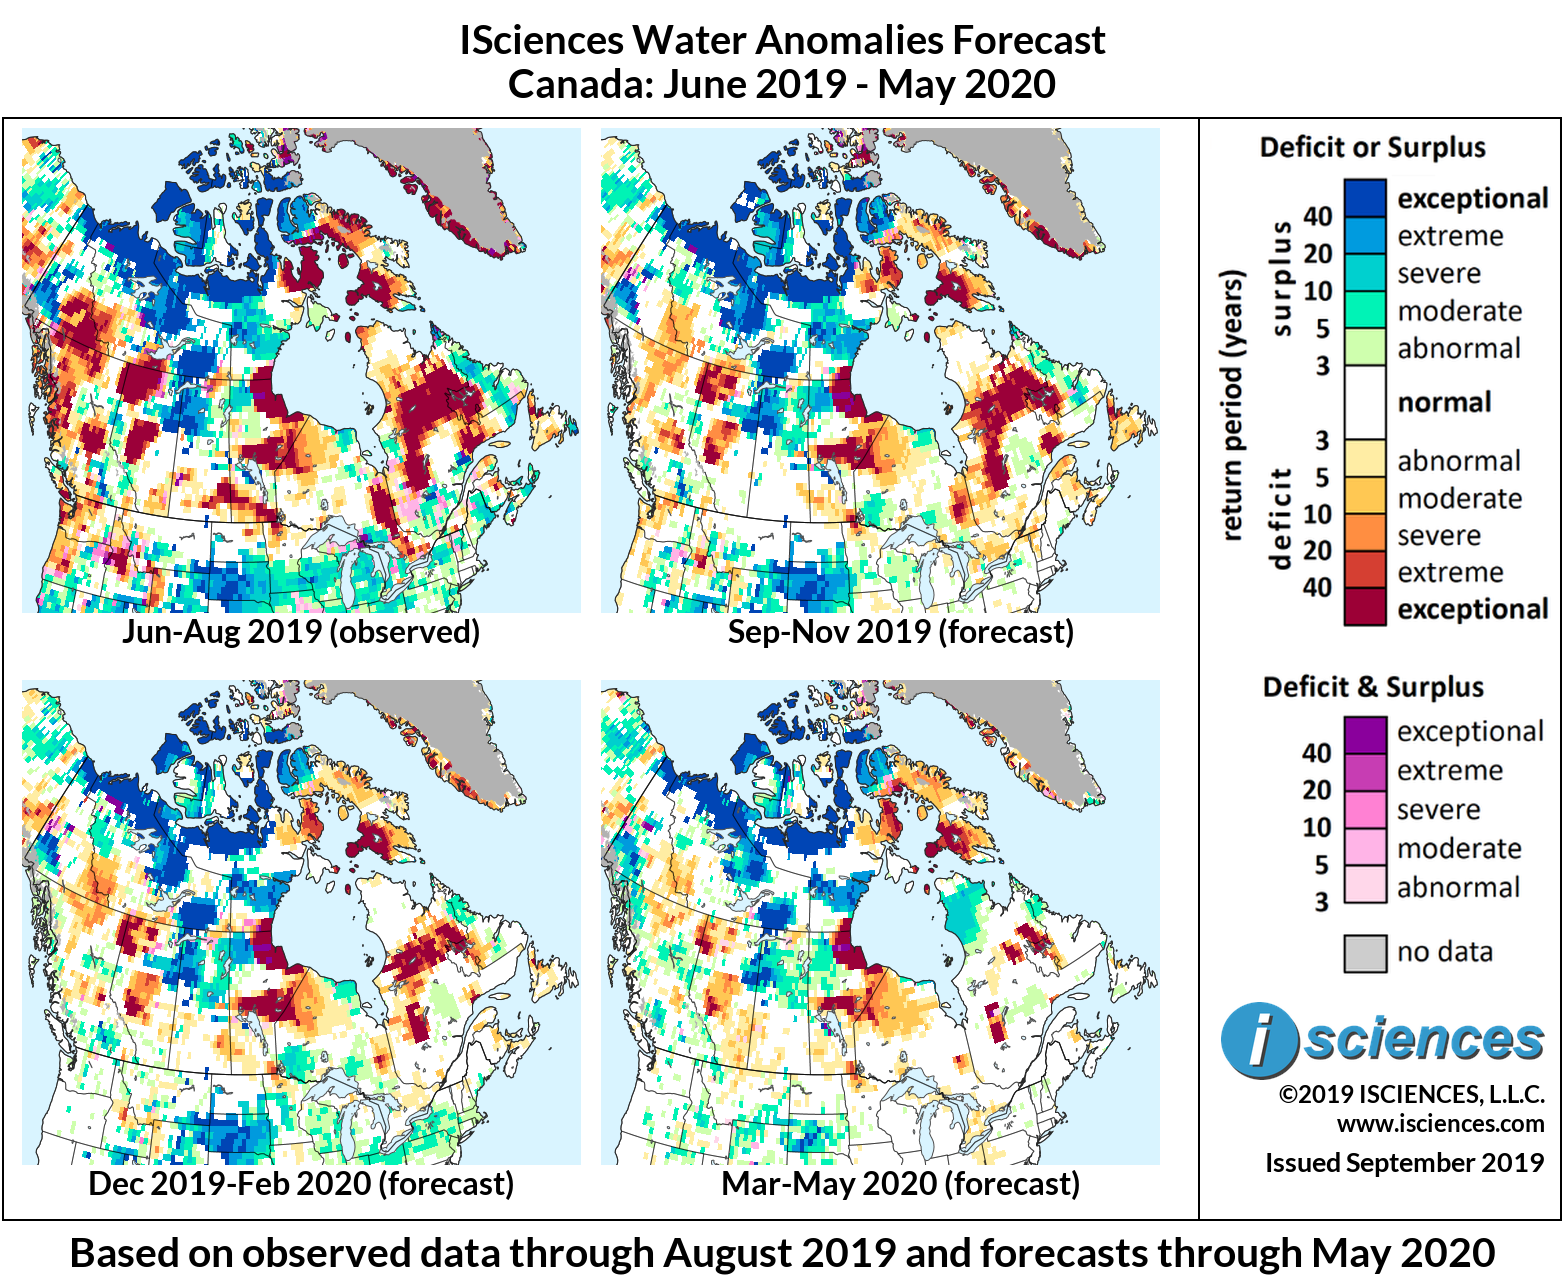 ISciences_Canada_Composite_Adjusted_201906-202005_3mo_panel.png